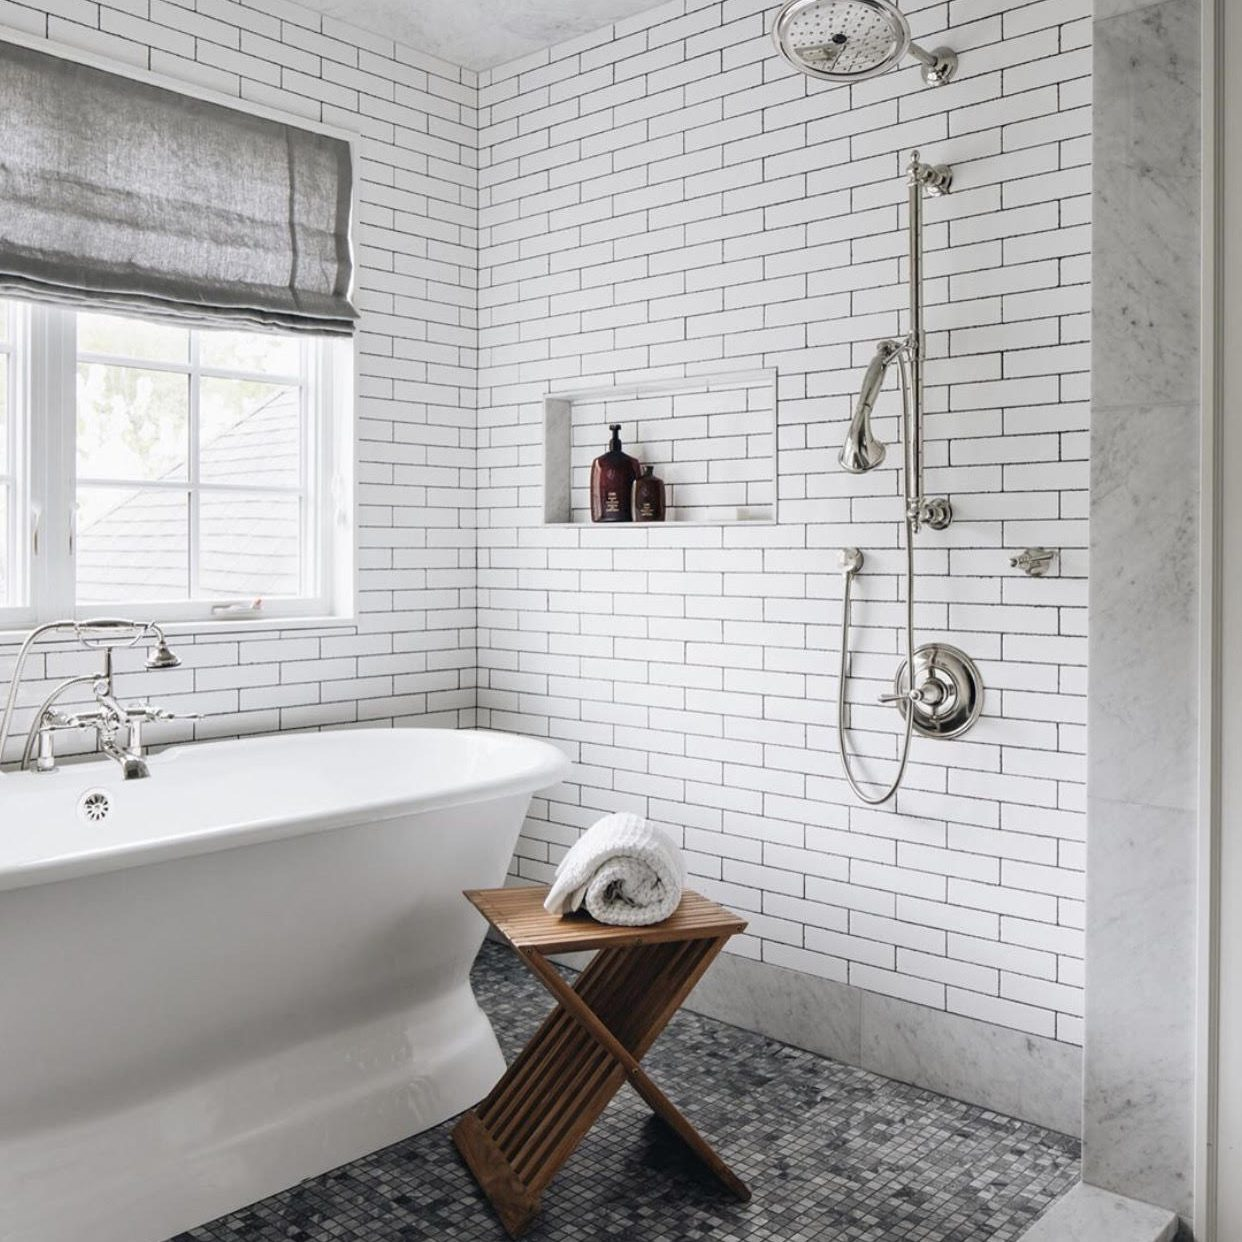 Modern Farmhouse Bathroom by Kenowa Builders, Walk In Tile Shower and Bathtub in Neutral Bathroom Design